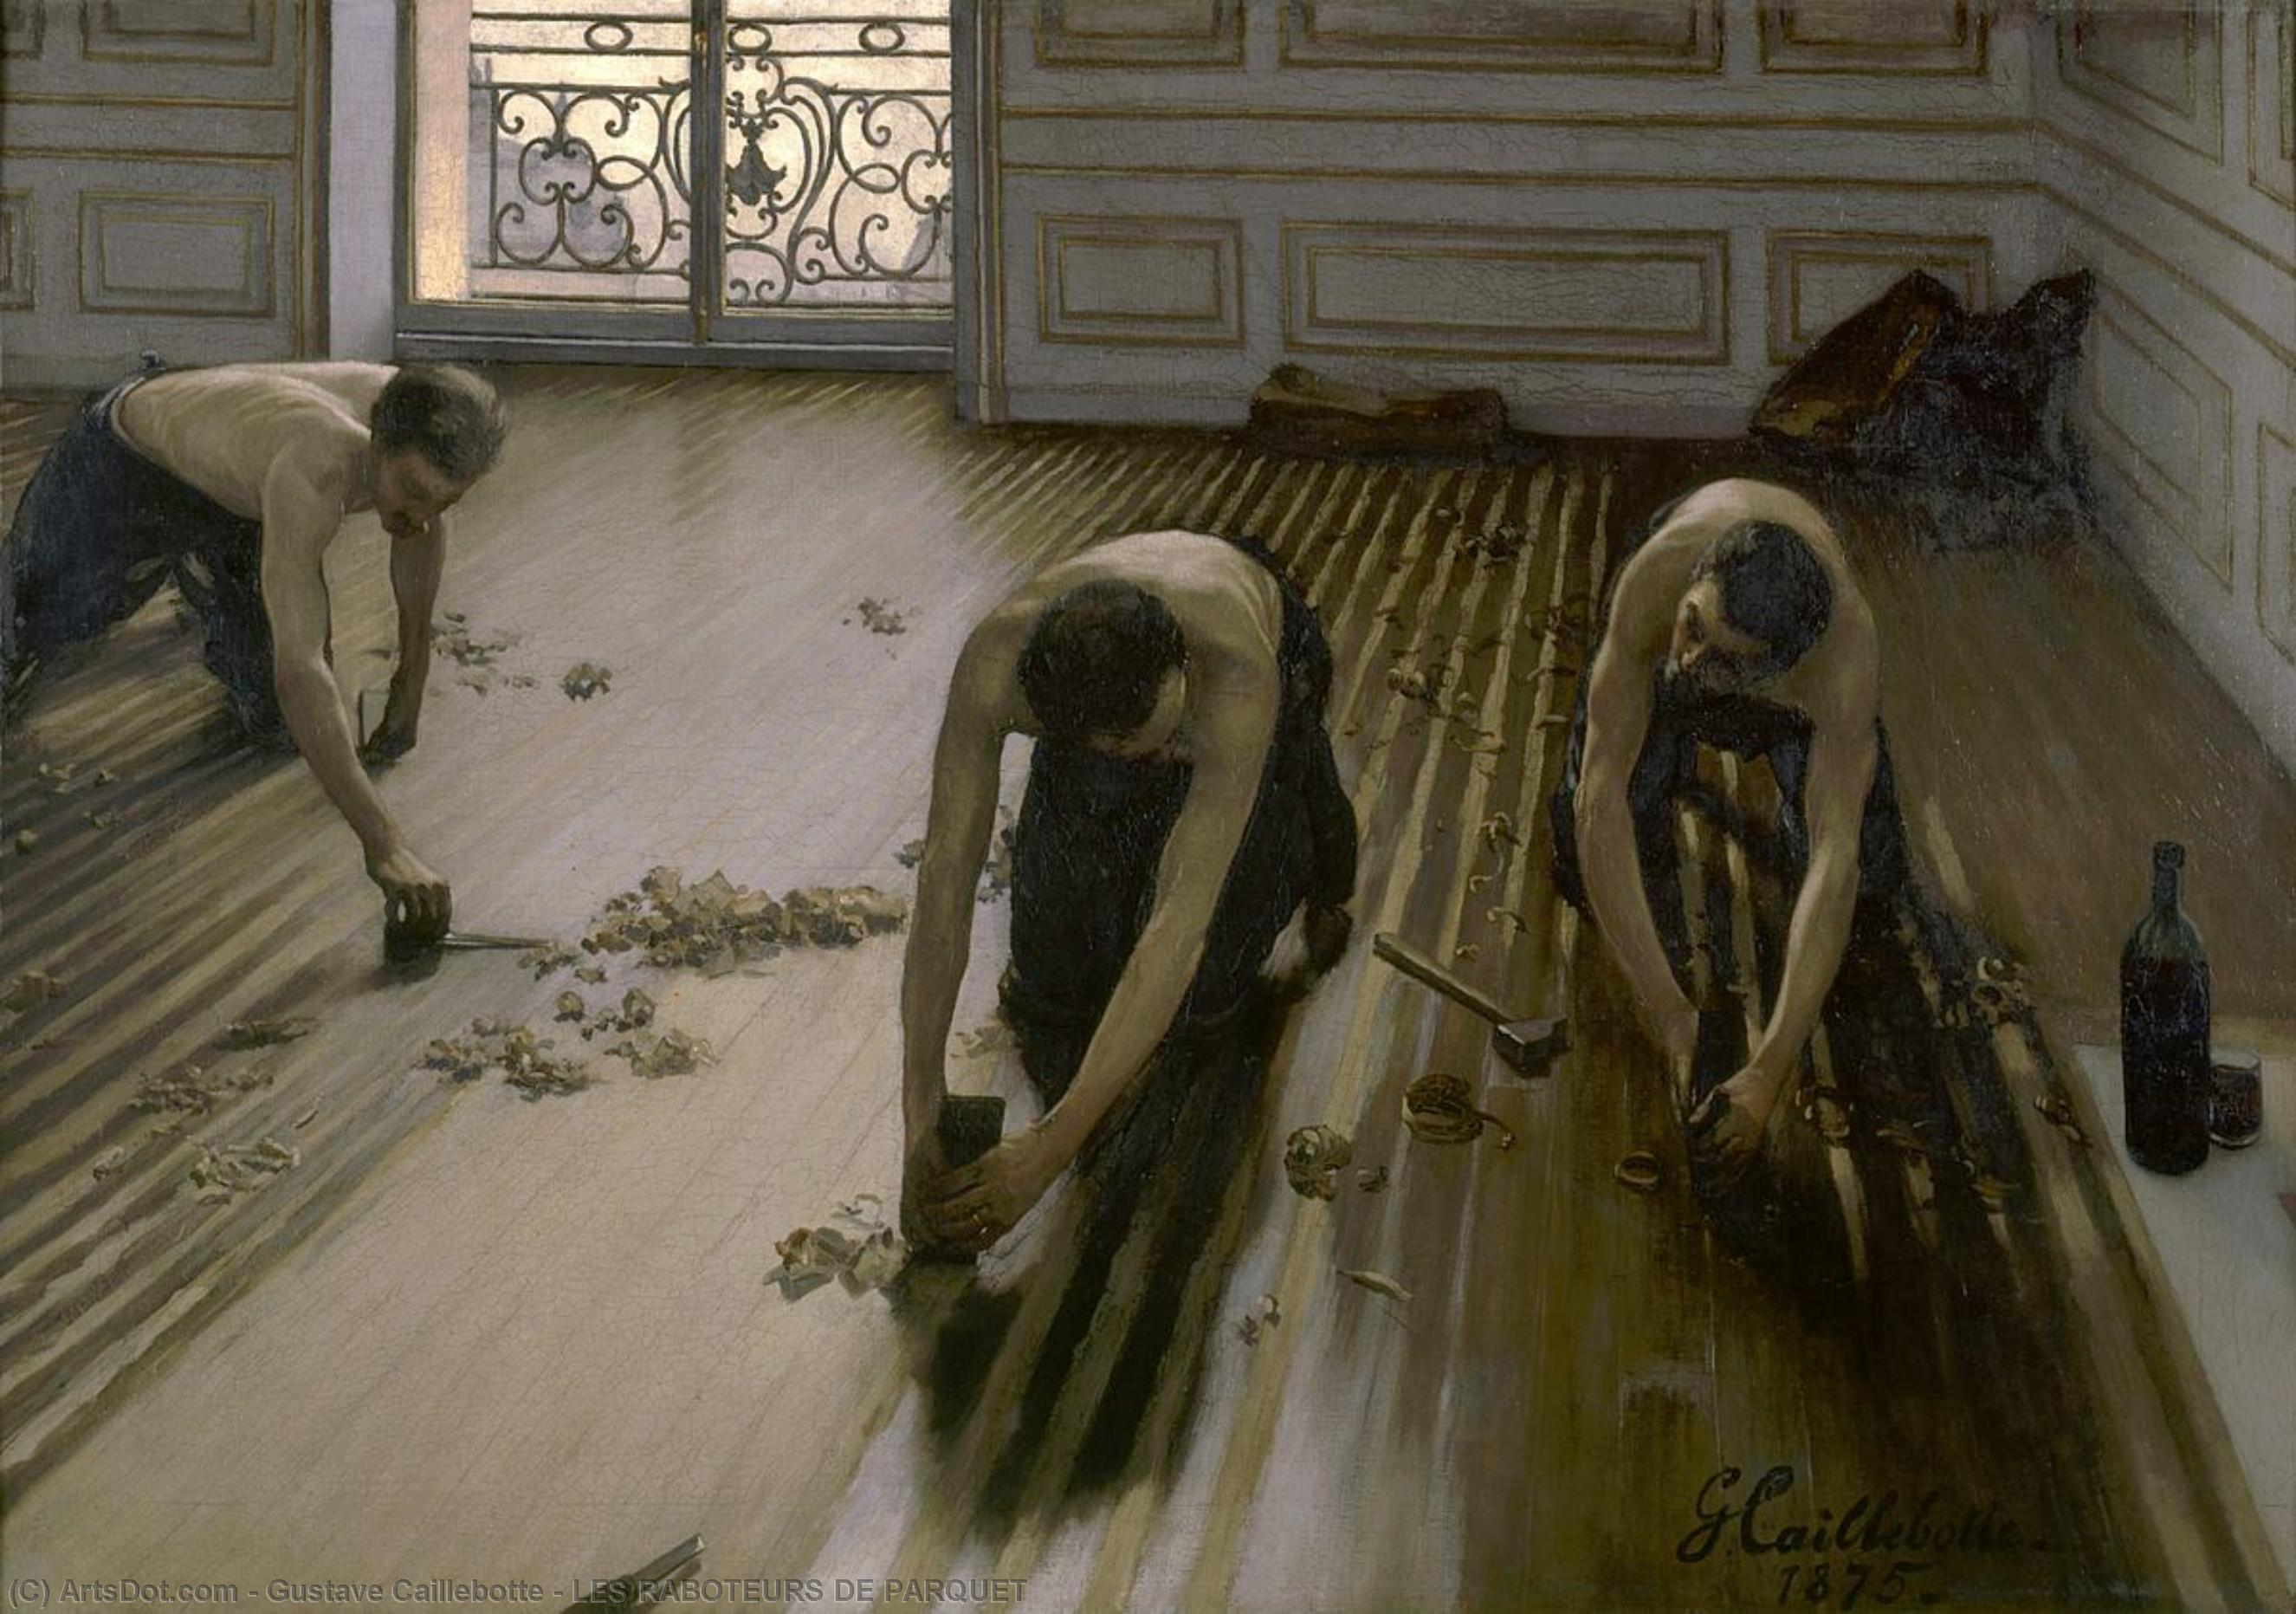 Wikioo.org - The Encyclopedia of Fine Arts - Painting, Artwork by Gustave Caillebotte - LES RABOTEURS DE PARQUET